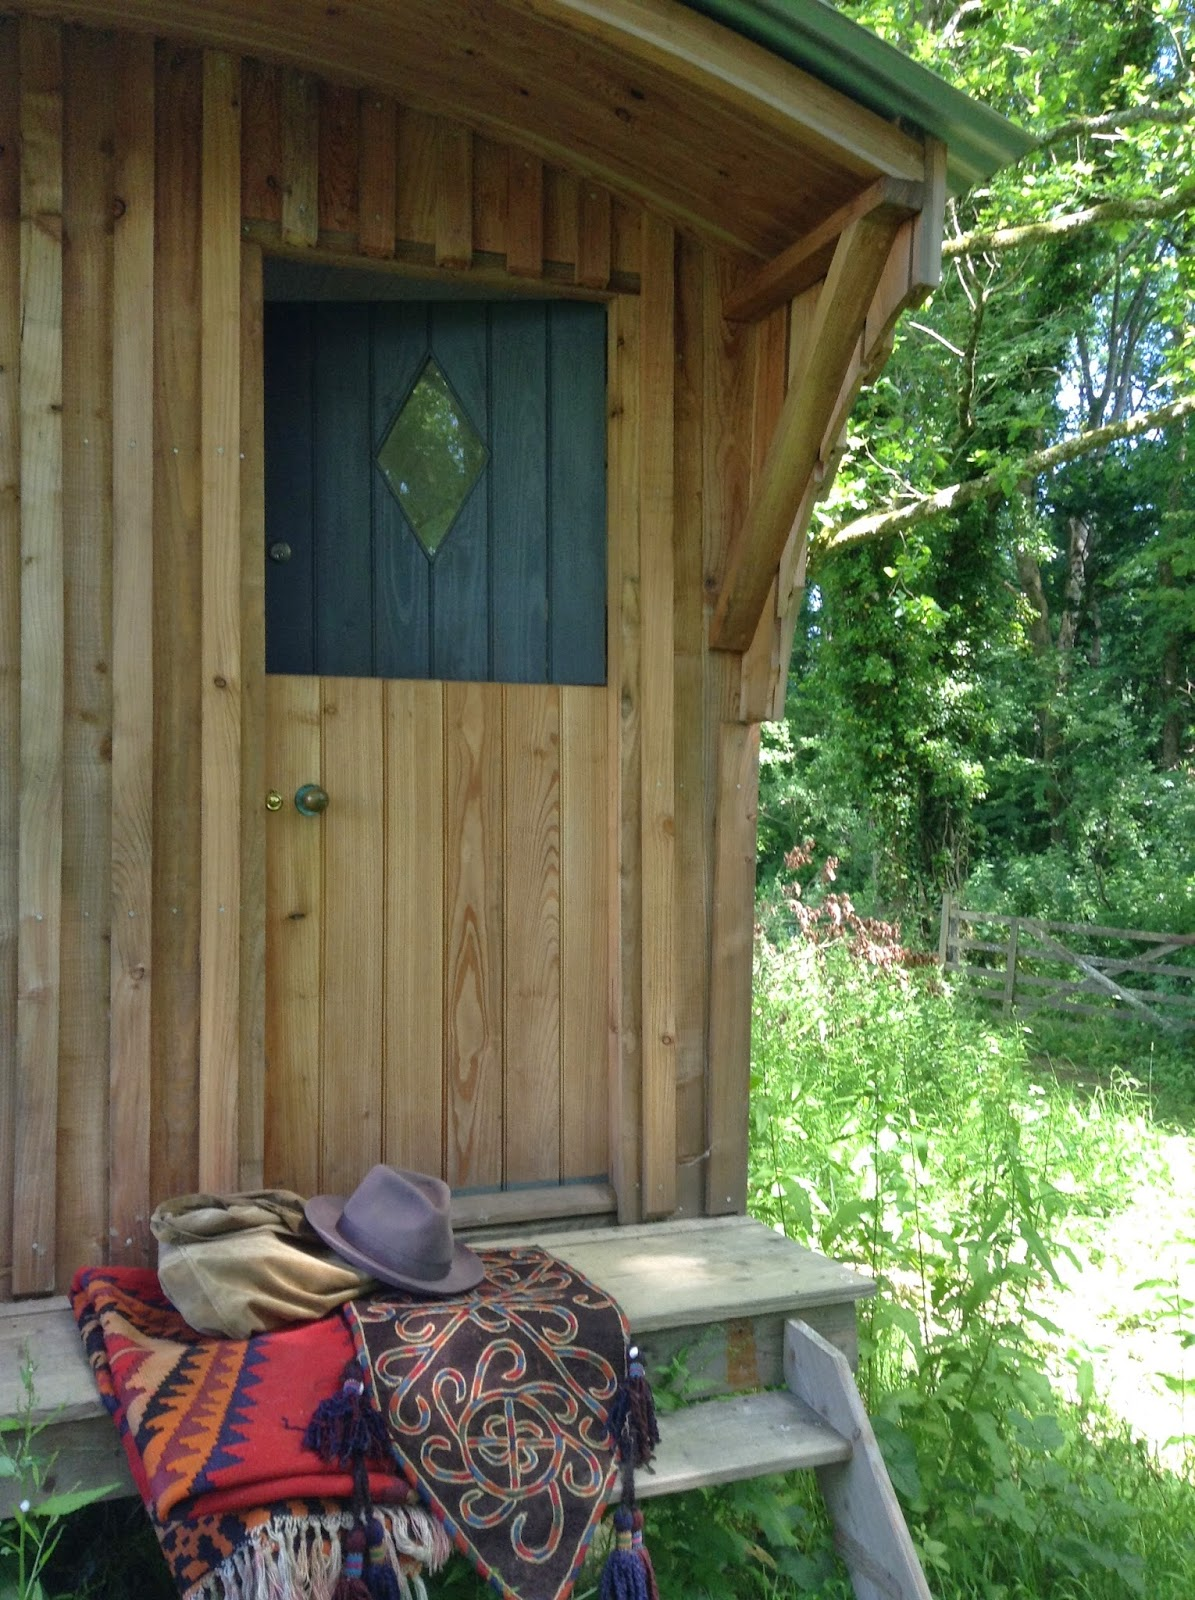 hut porch ready to travel